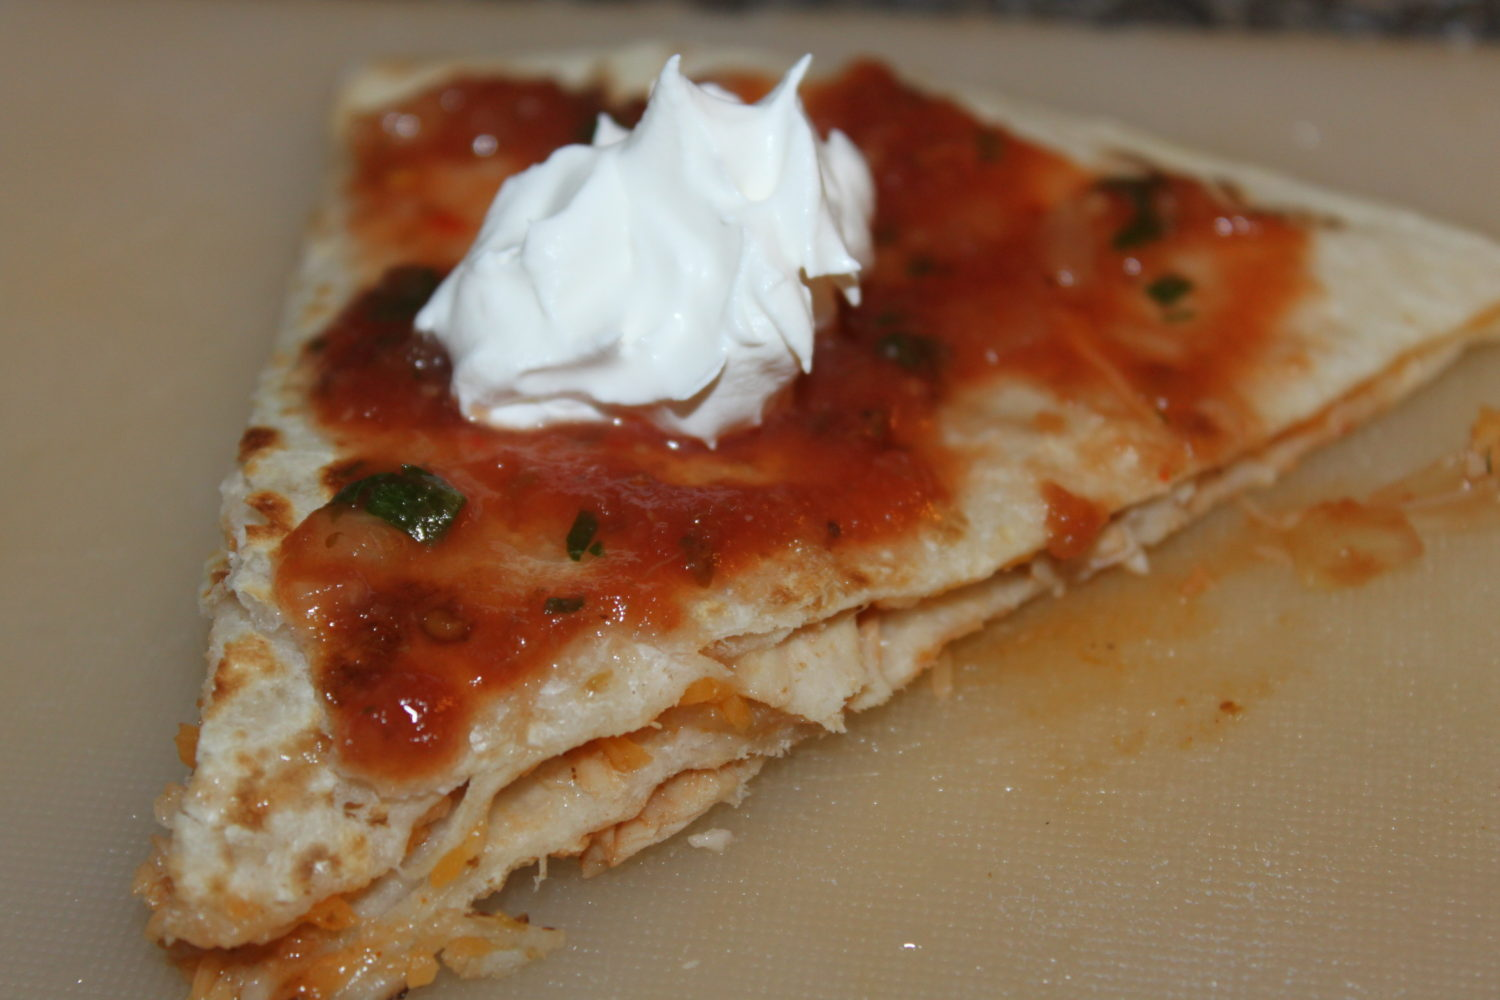 Barbecue turkey quesedilla topped with salsa and sour cream